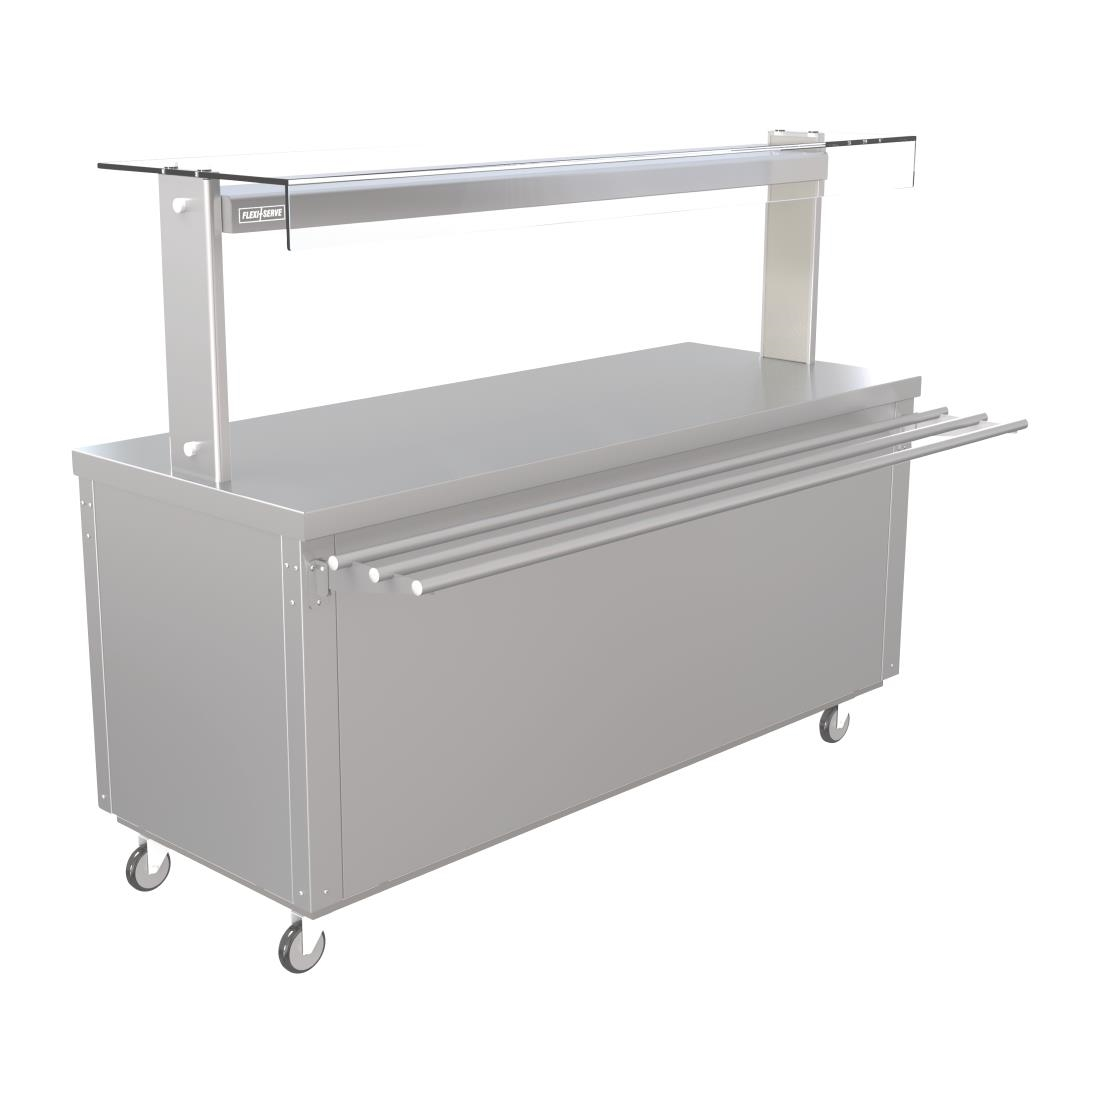 Image of Parry Ambient Buffet Bar with Chilled Cupboard 1830mm FS-A5PACK